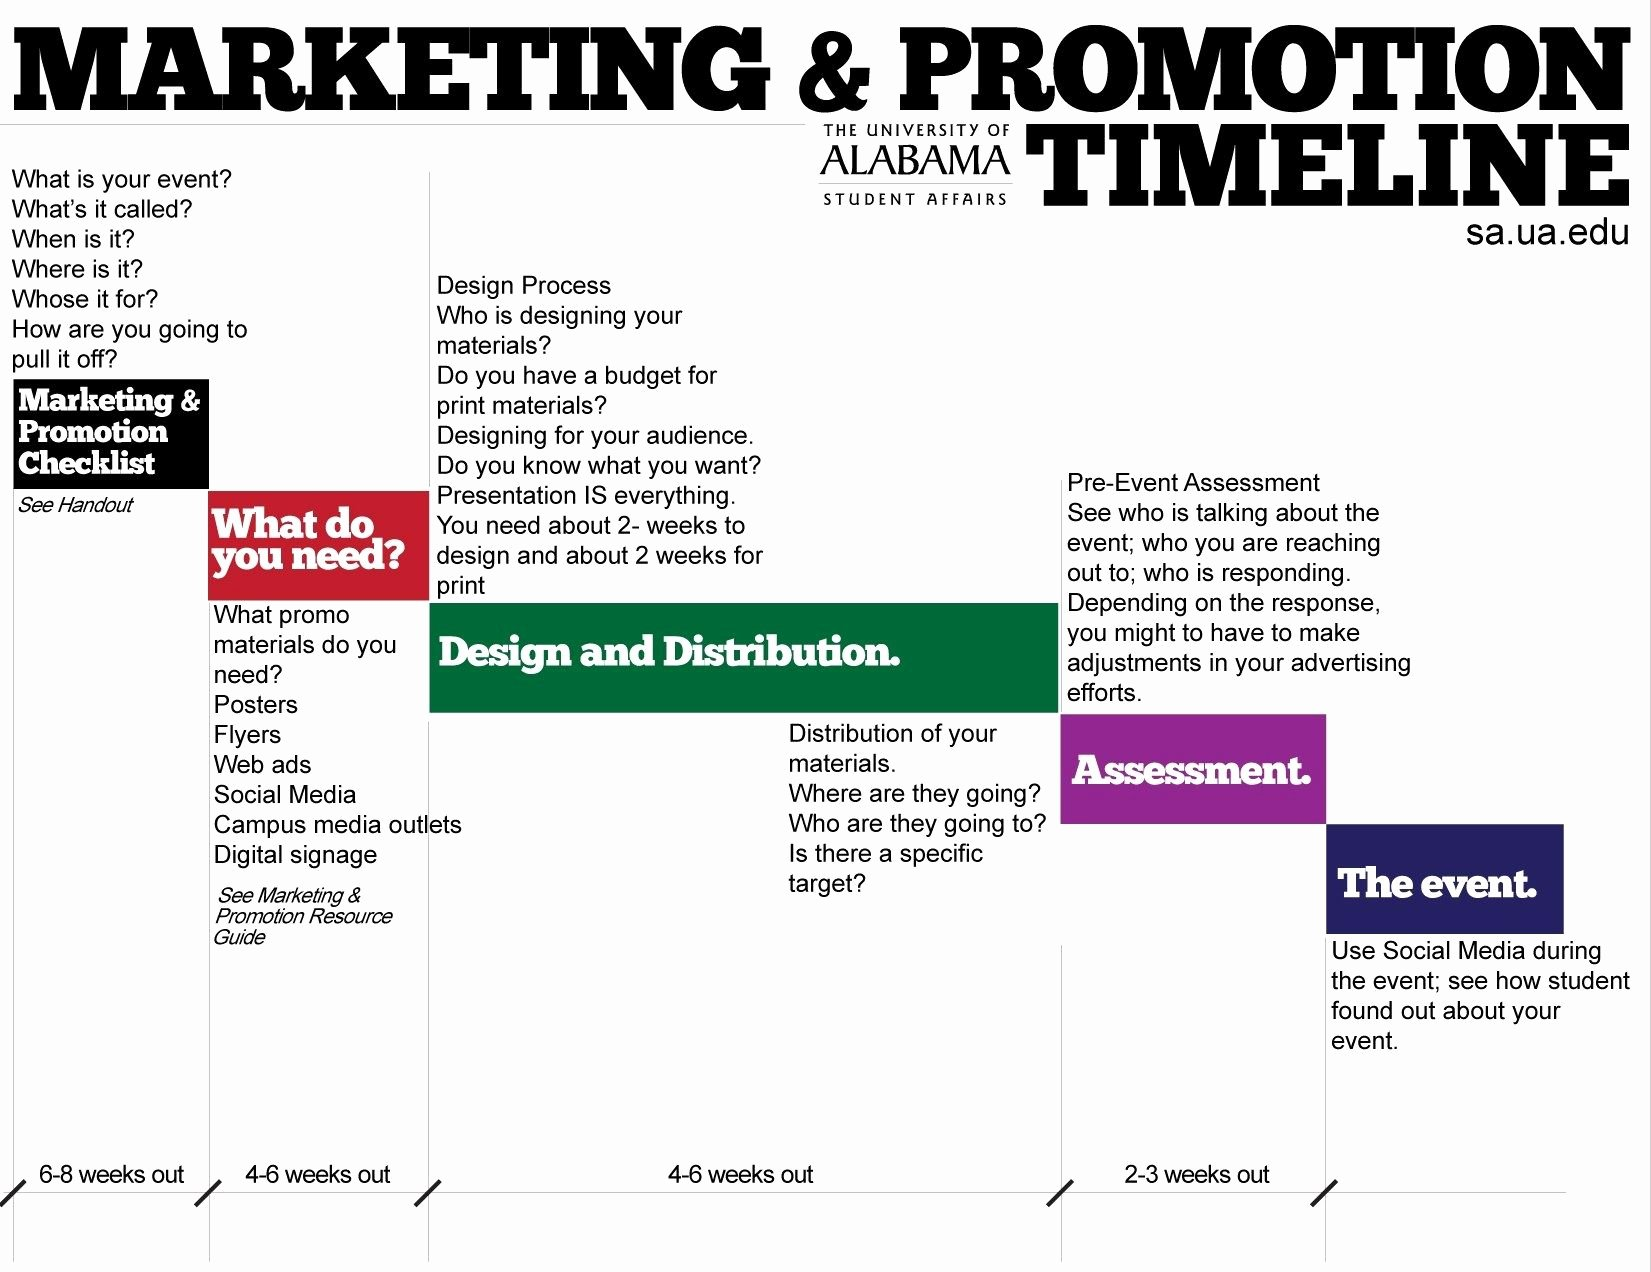 Marketing Campaign Timeline Template Awesome Marketing Timeline Info 283 Personal Board